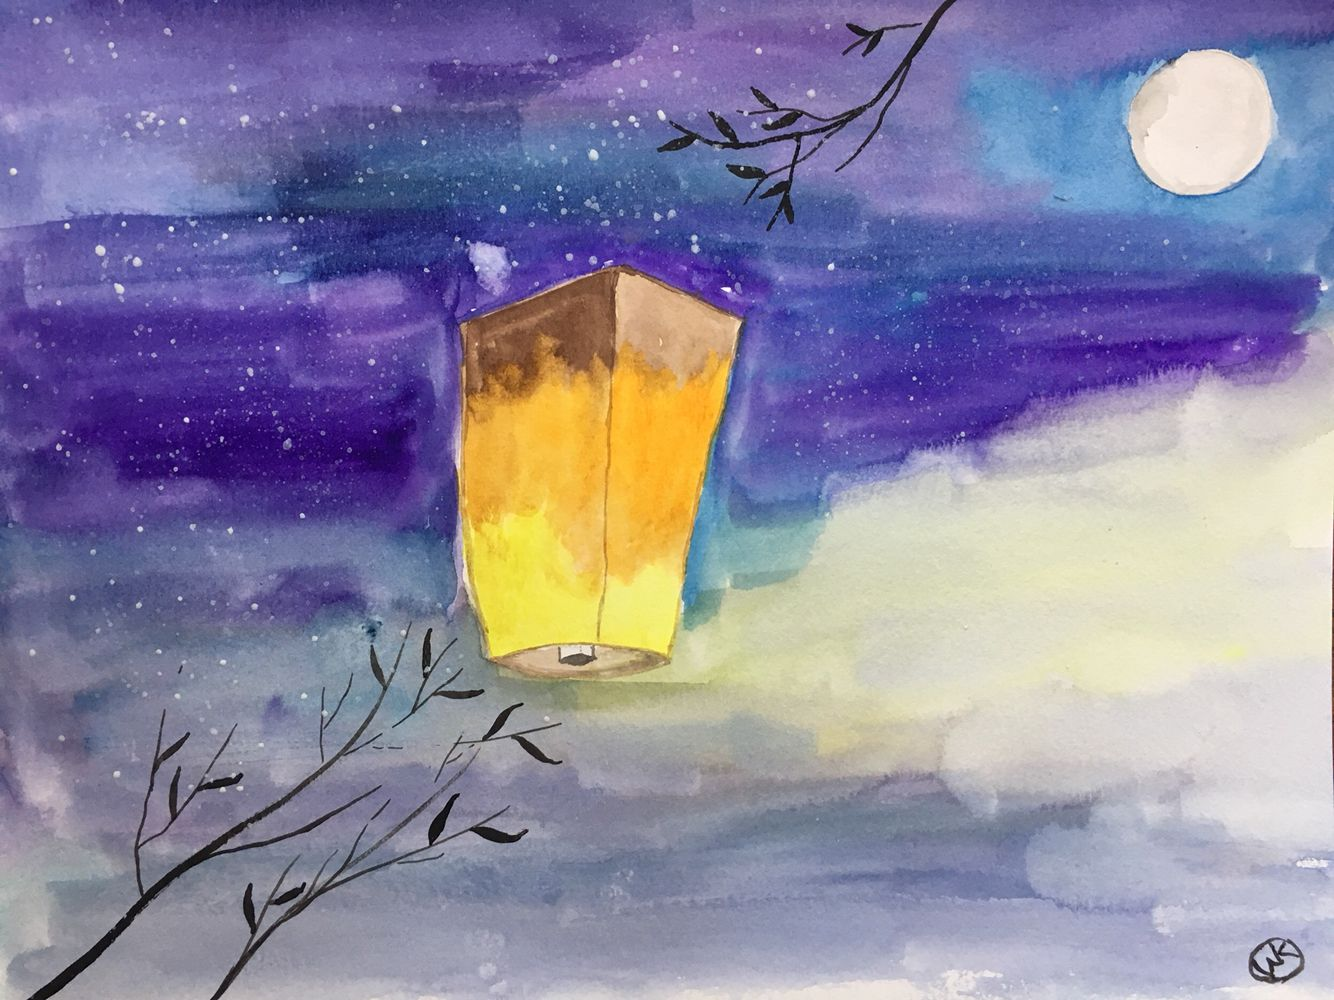 Sky Lantern Watercolor 9x12 Painting Art Abstract Artwork